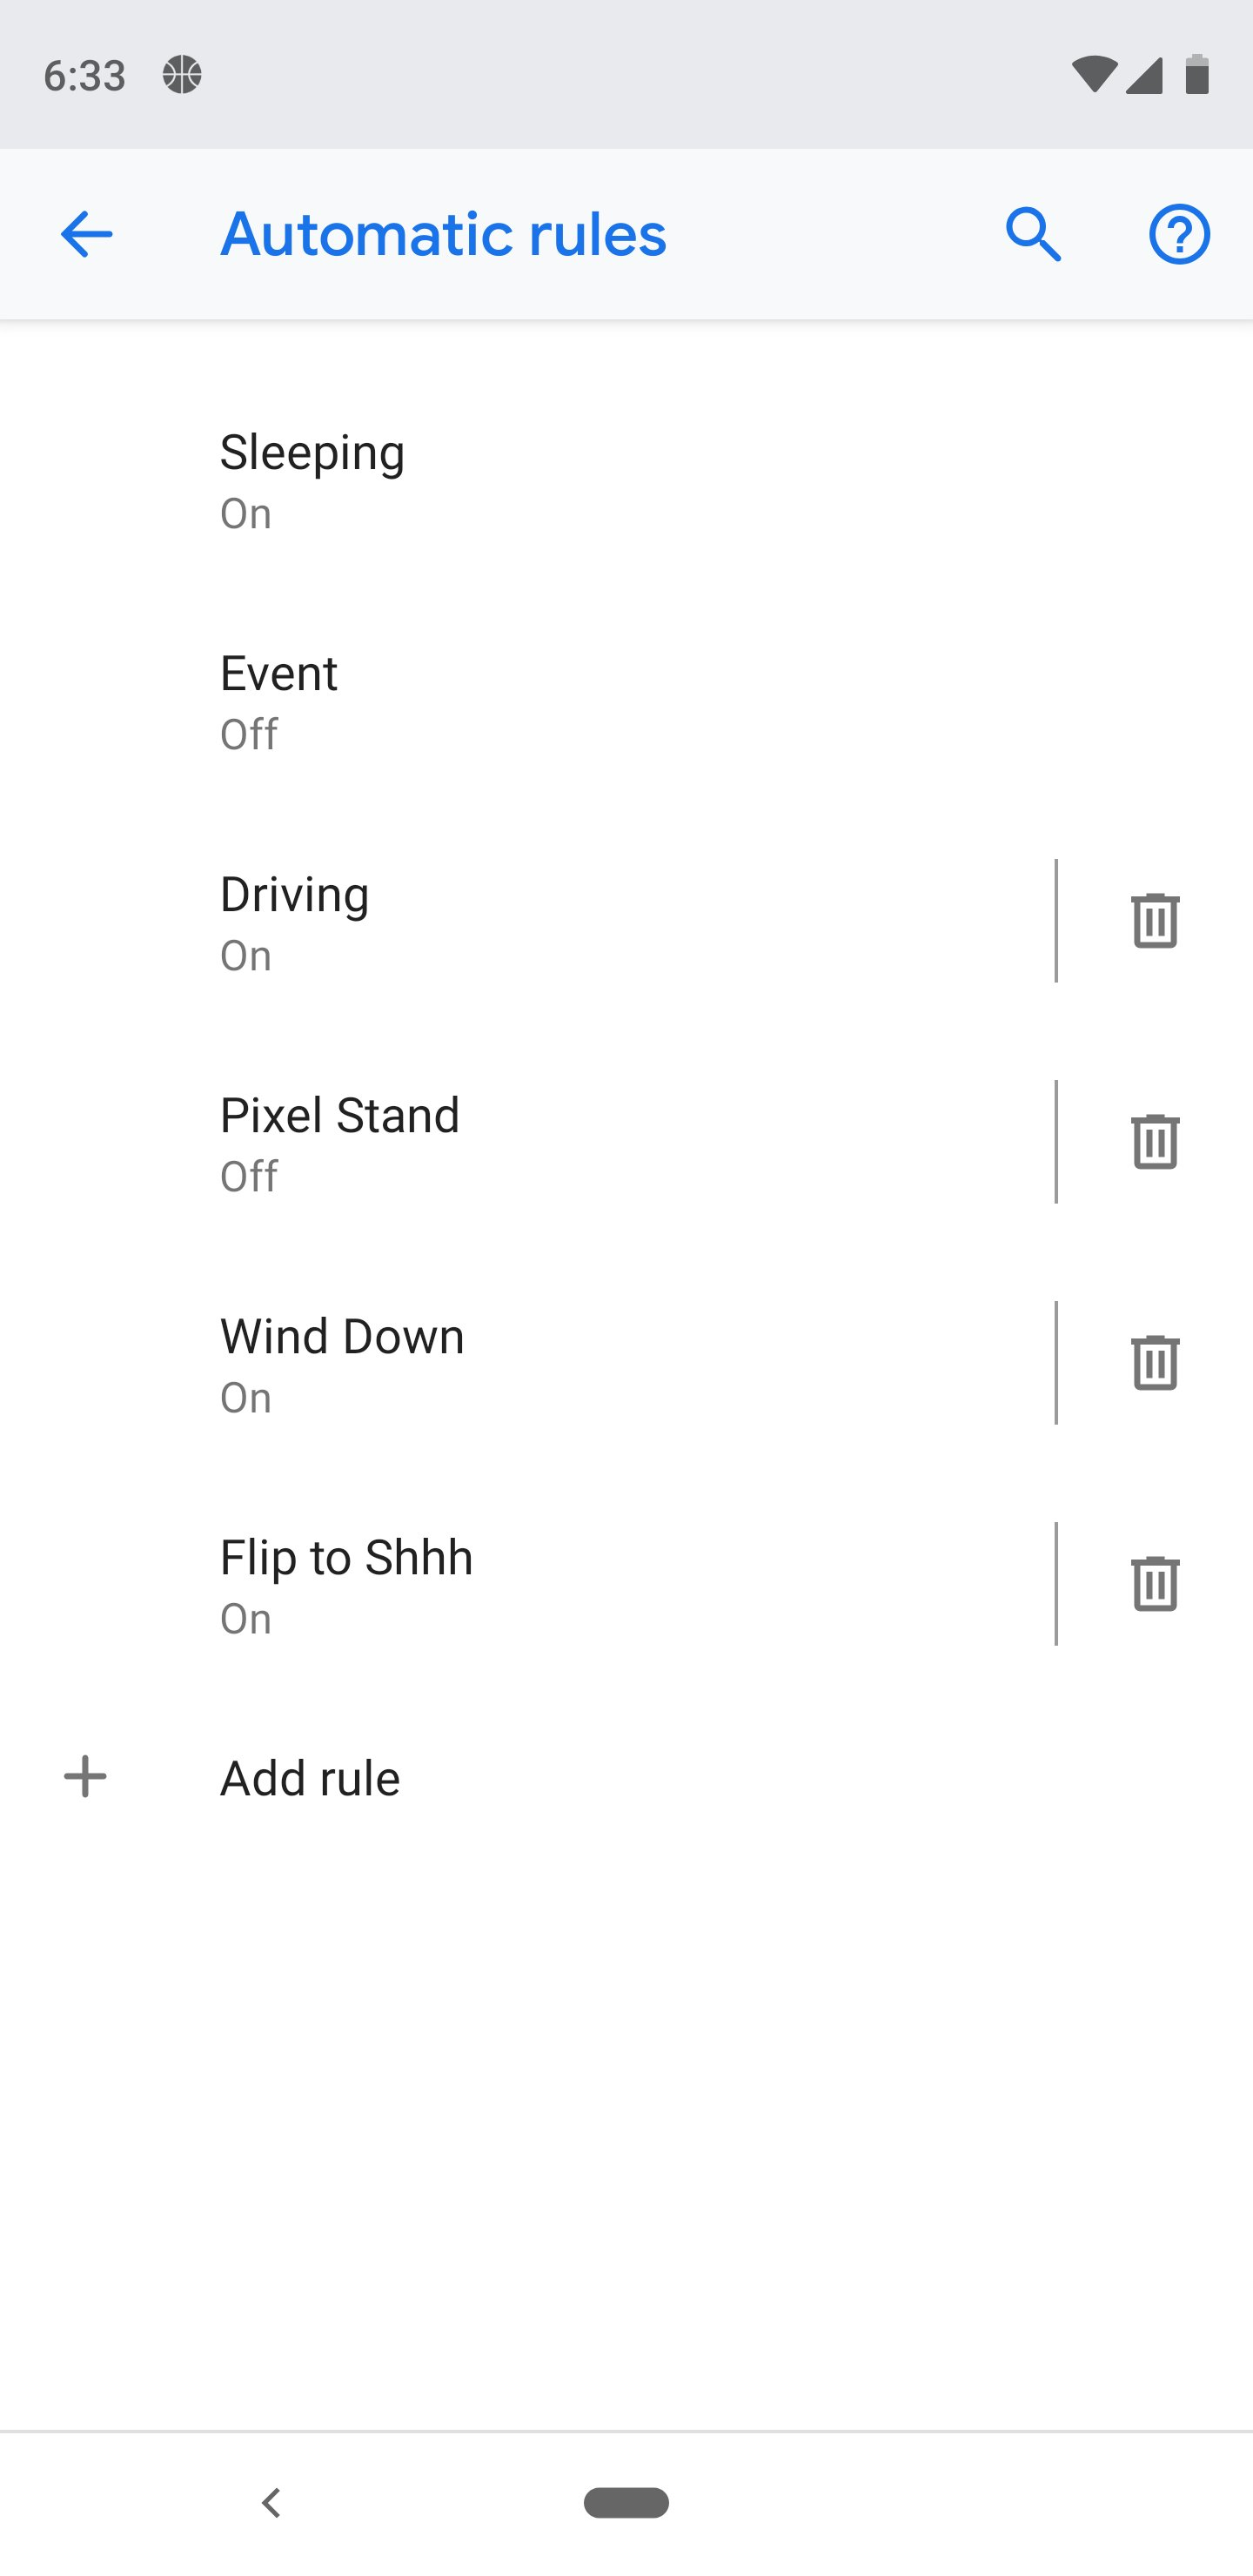 Pixel 3 Doesn't Connect to Car Bluetooth Automatically - Android